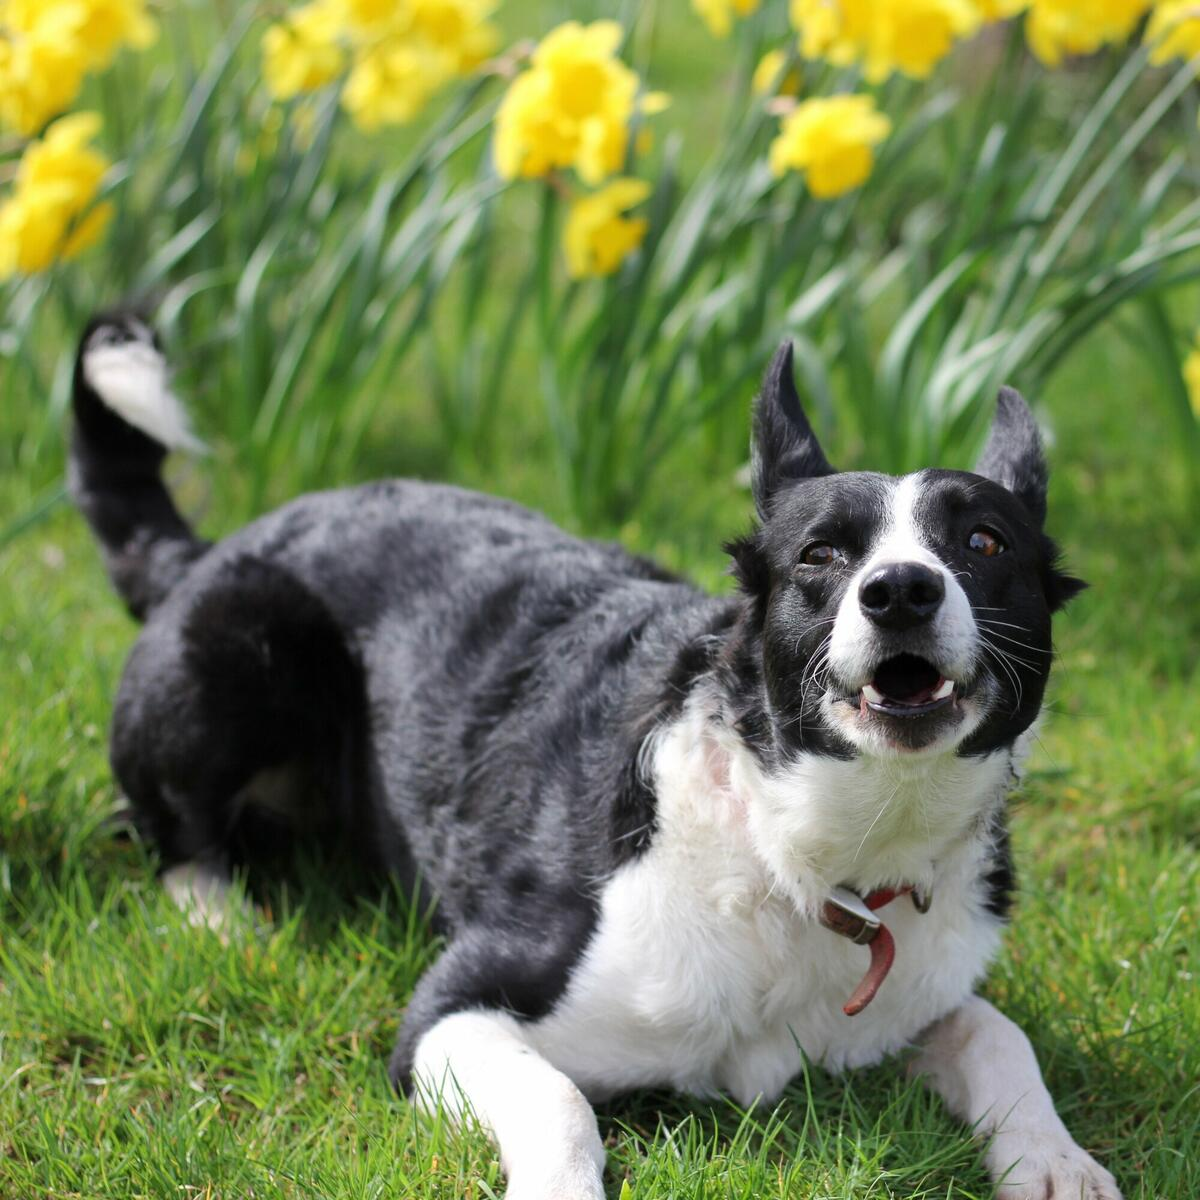 Our bestselling cider, Birdbarker, is named after our relentless collie Summer. If you come, you're sure to hear her before you see her!